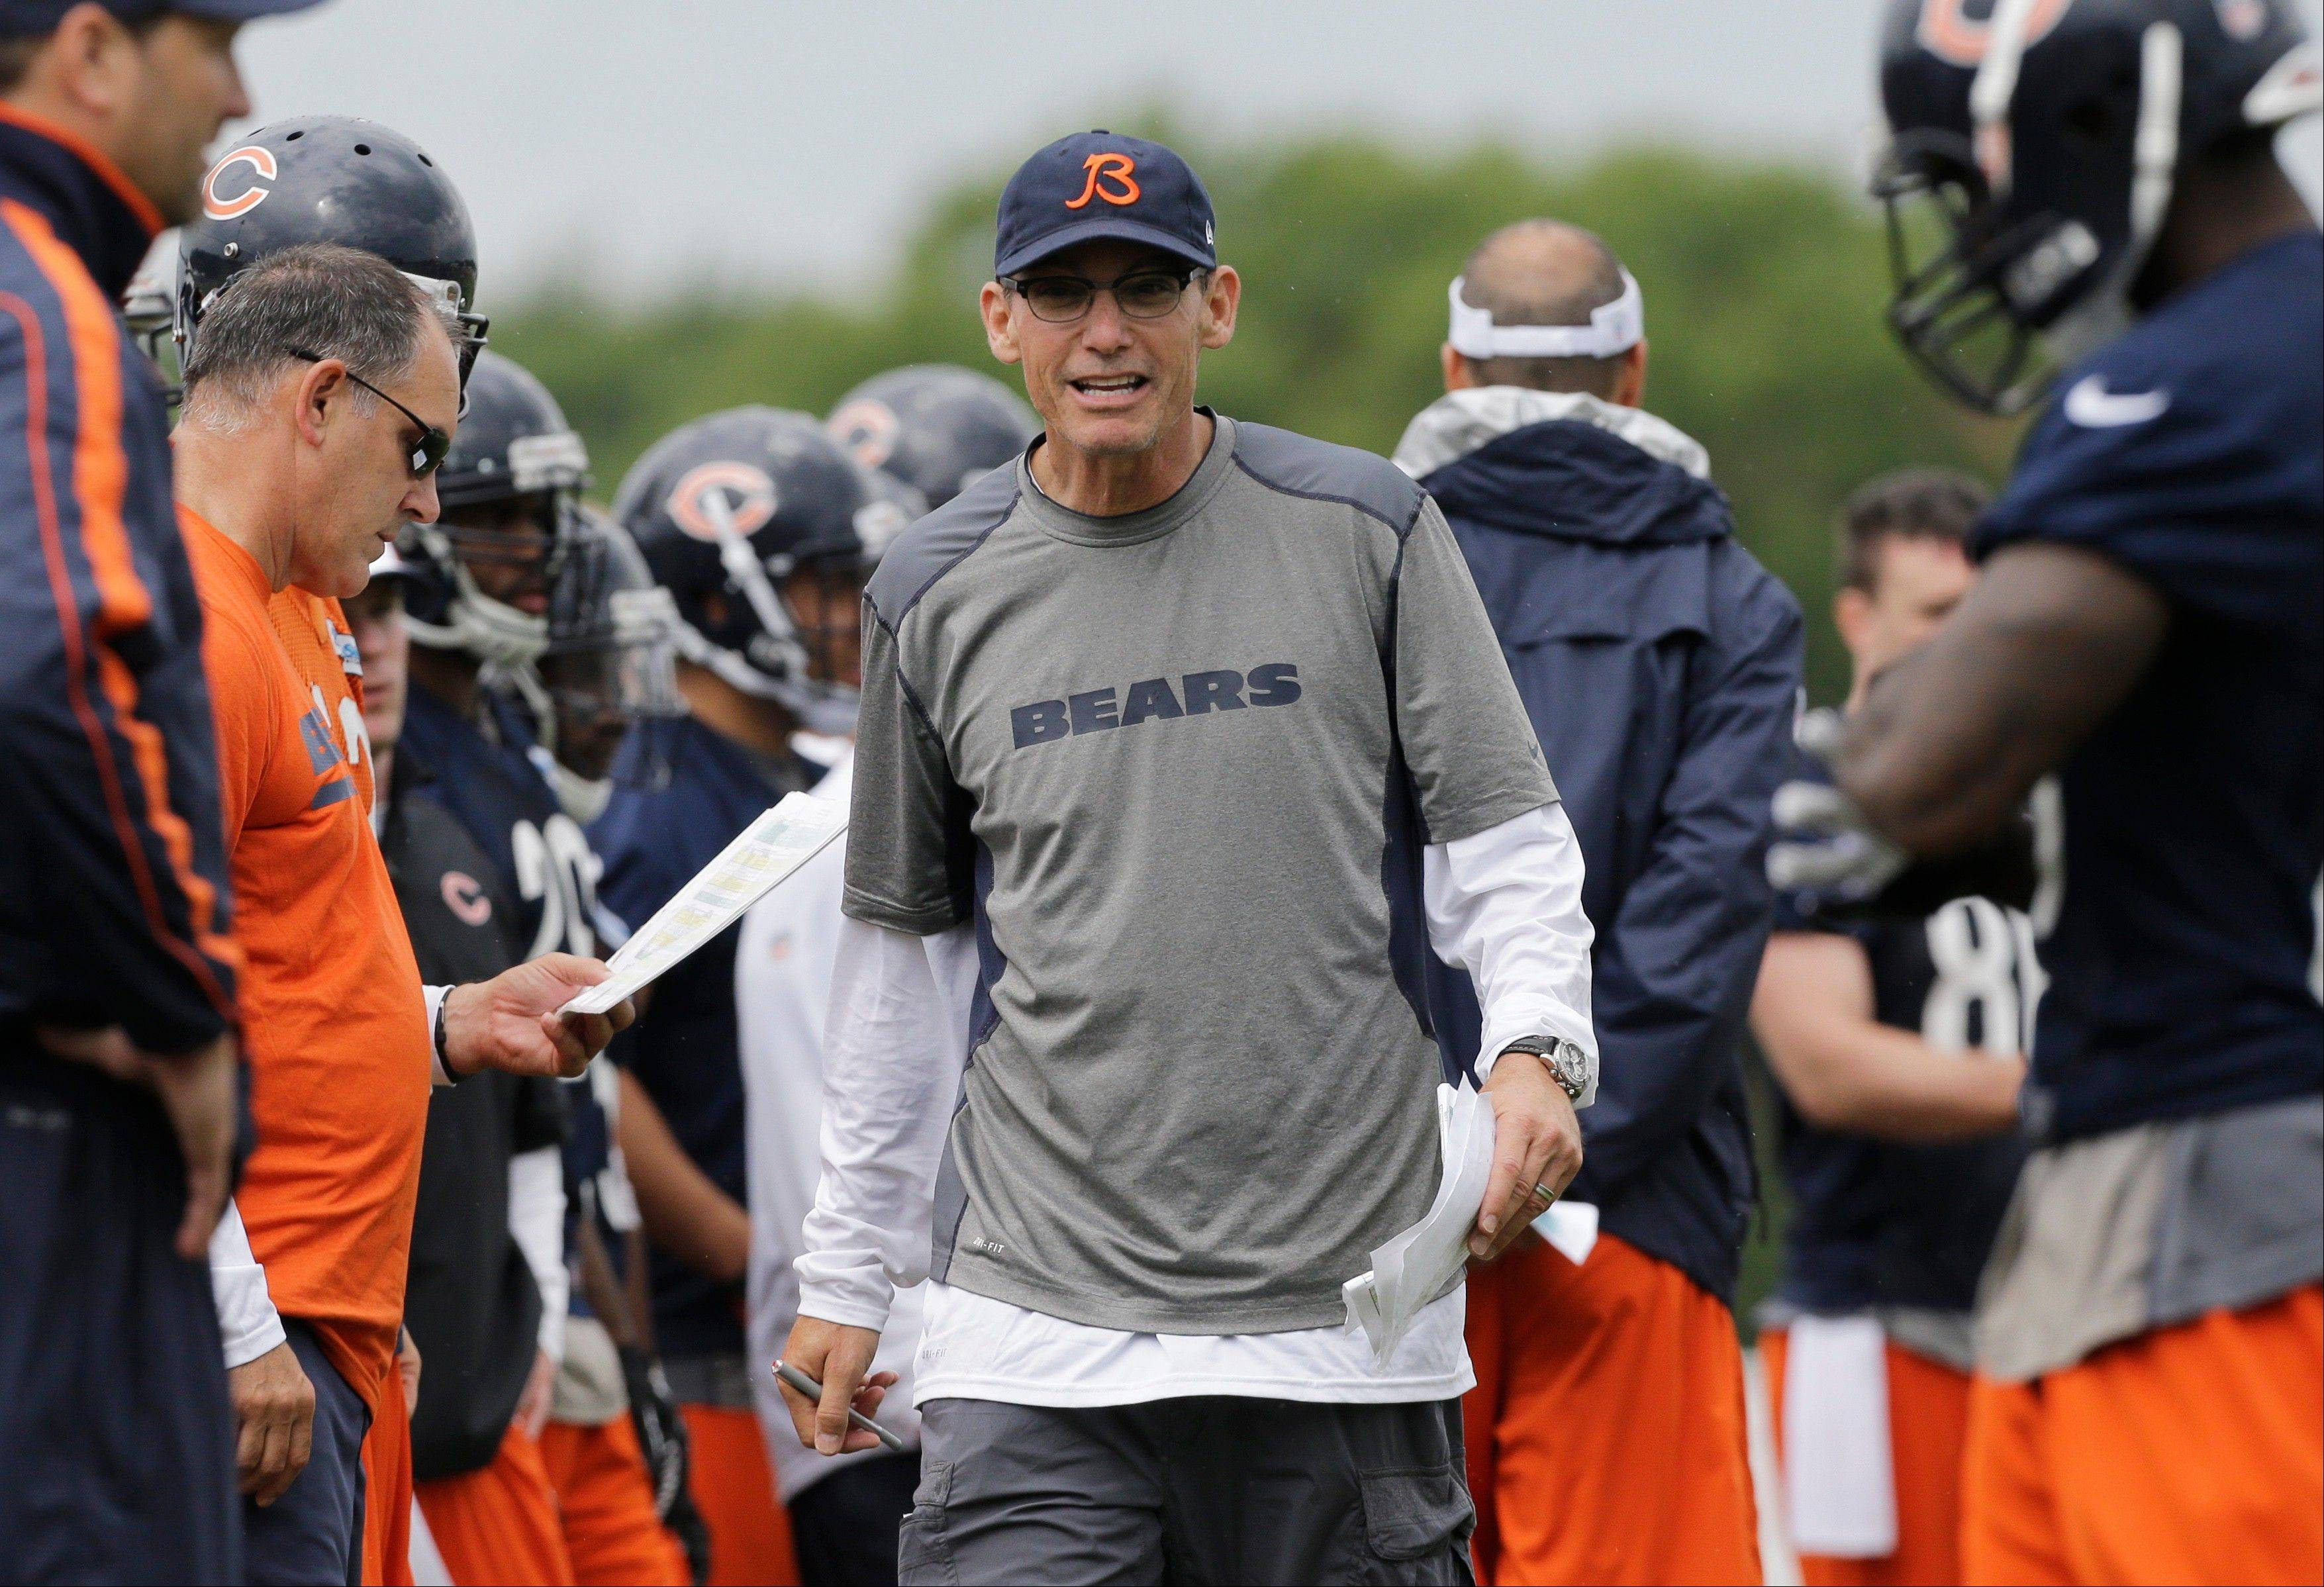 As the Chicago Bears opened training camp Friday in Bourbonnais, two key members of the team's defense (linebacker Lance Briggs and cornerback Charles Tillman) say they've moved on after Lovie Smith's firing and are ready to embrace the new regime, led by head coach Marc Trestman, above.